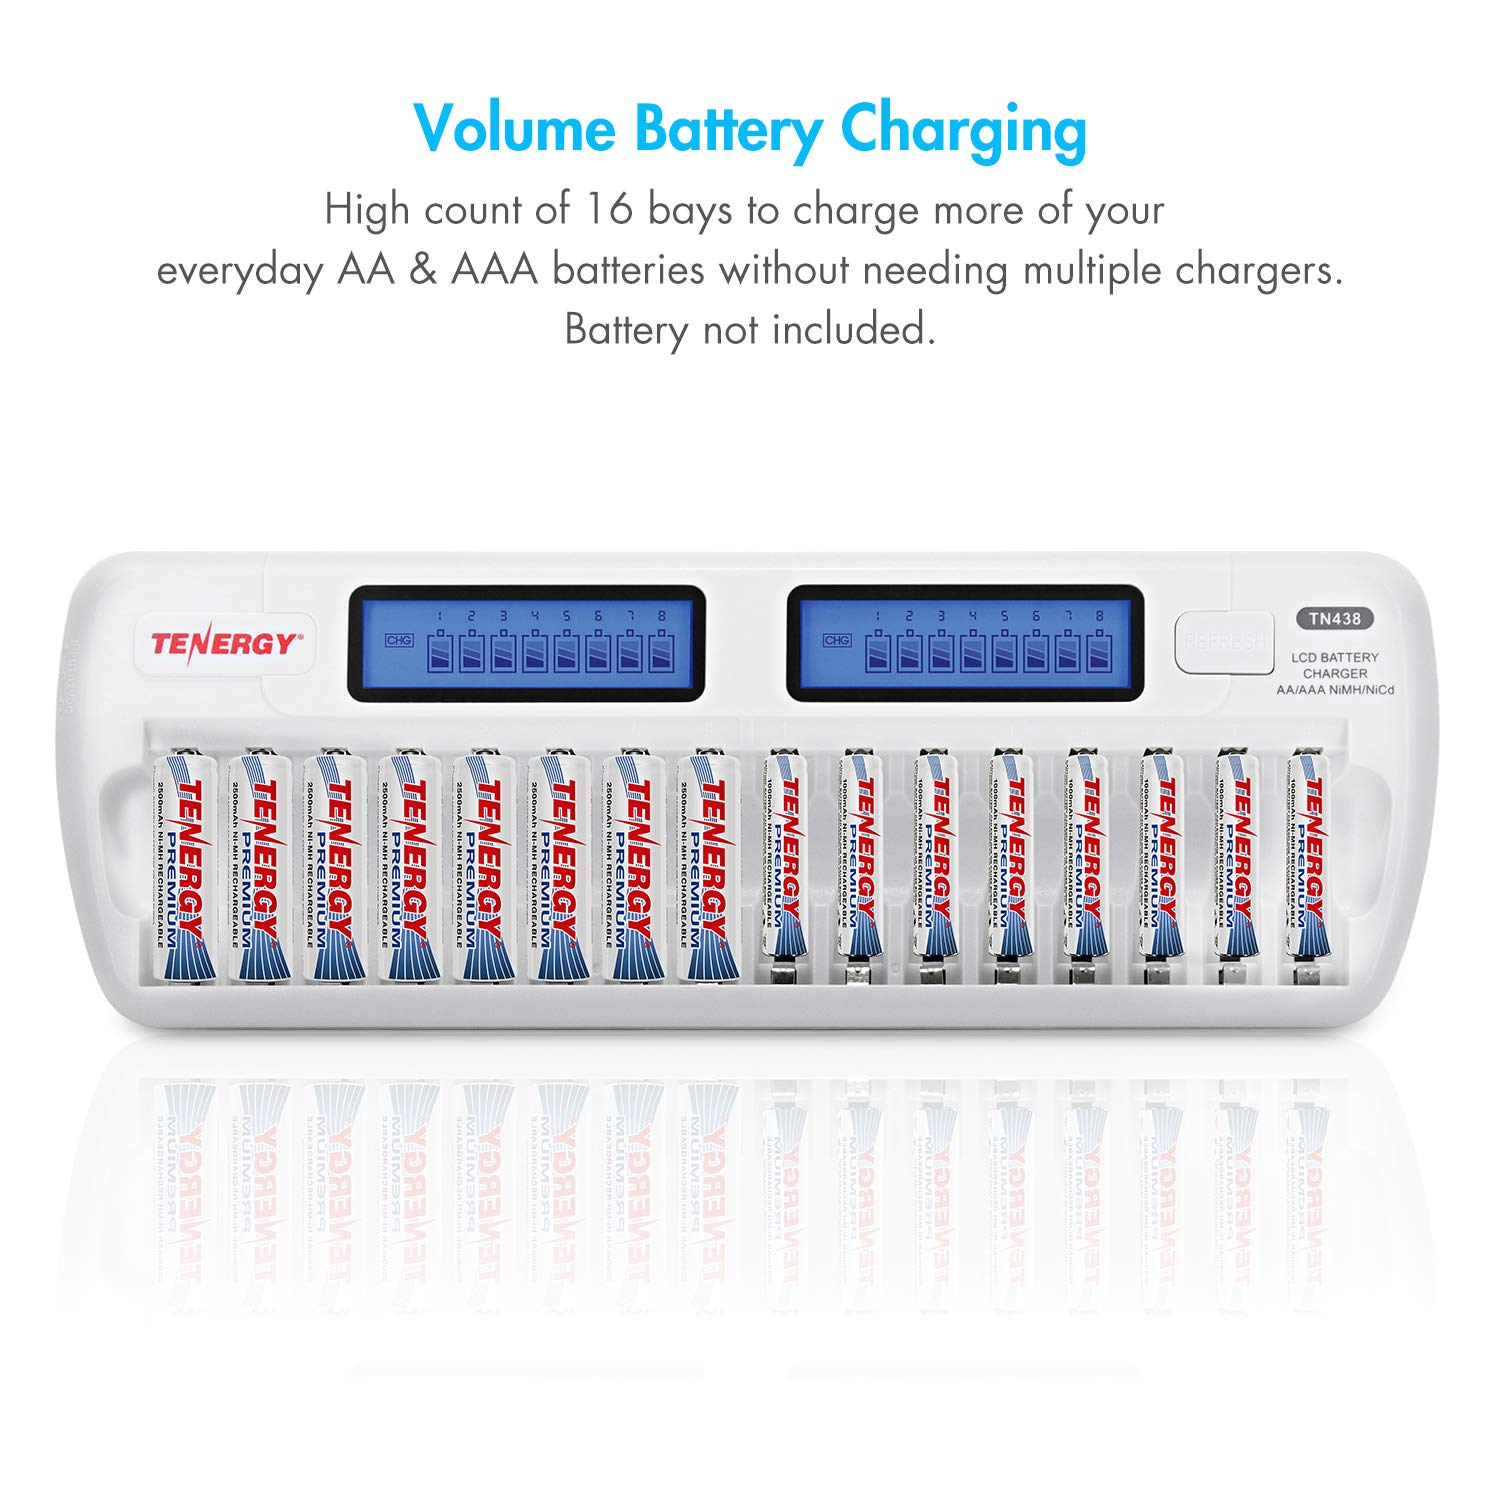 Tenergy Tn438 16 Bay Smart Charger With Lcd And Built In How To Make A Nimh Nicd Battery Circuit Homemade Ic Protection Aa Aaa Rechargeable Batteries Ac Wall Adapter